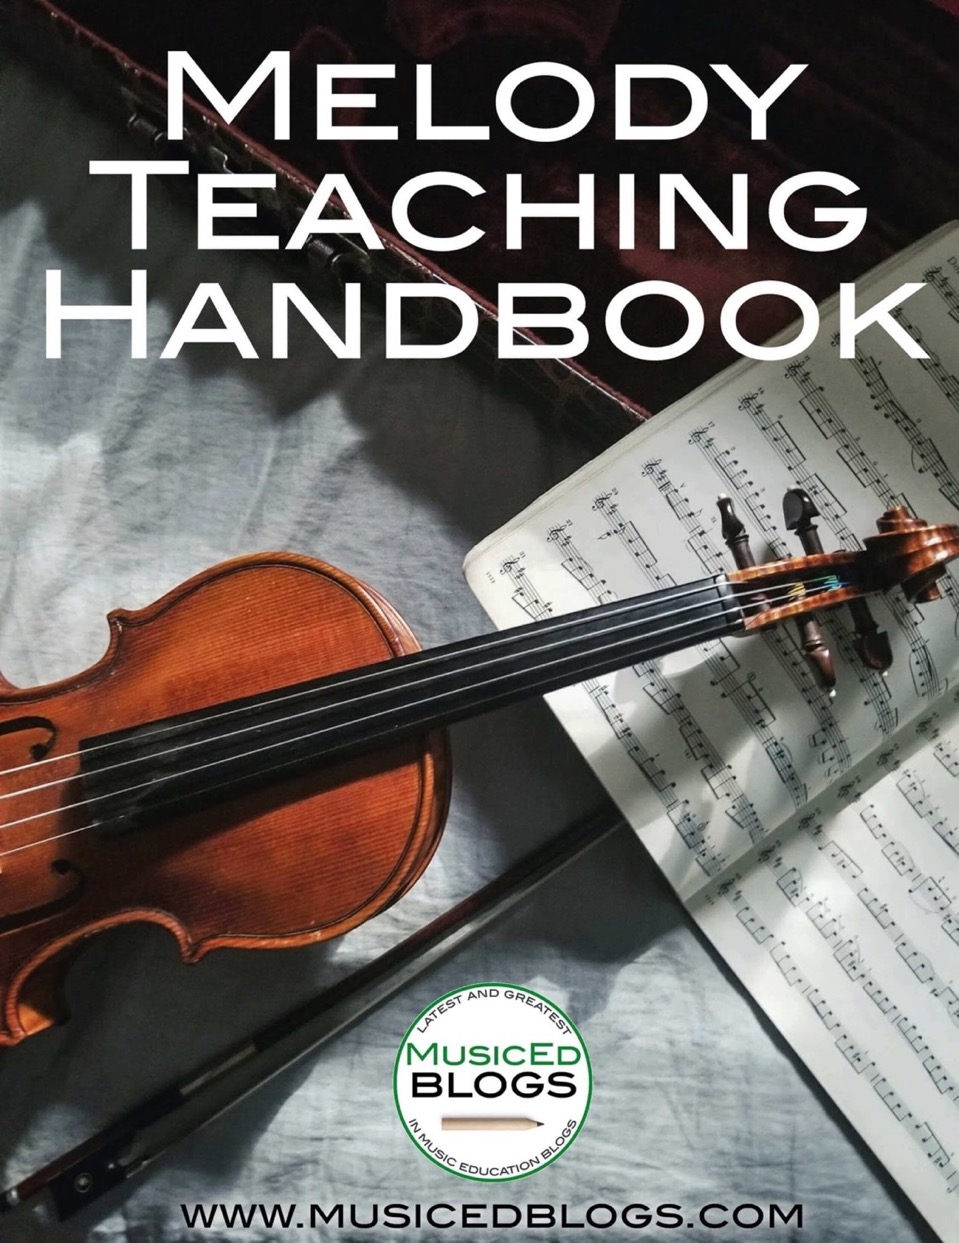 """This is a picture of a violin with the text """"Melody Teaching Handbook"""""""